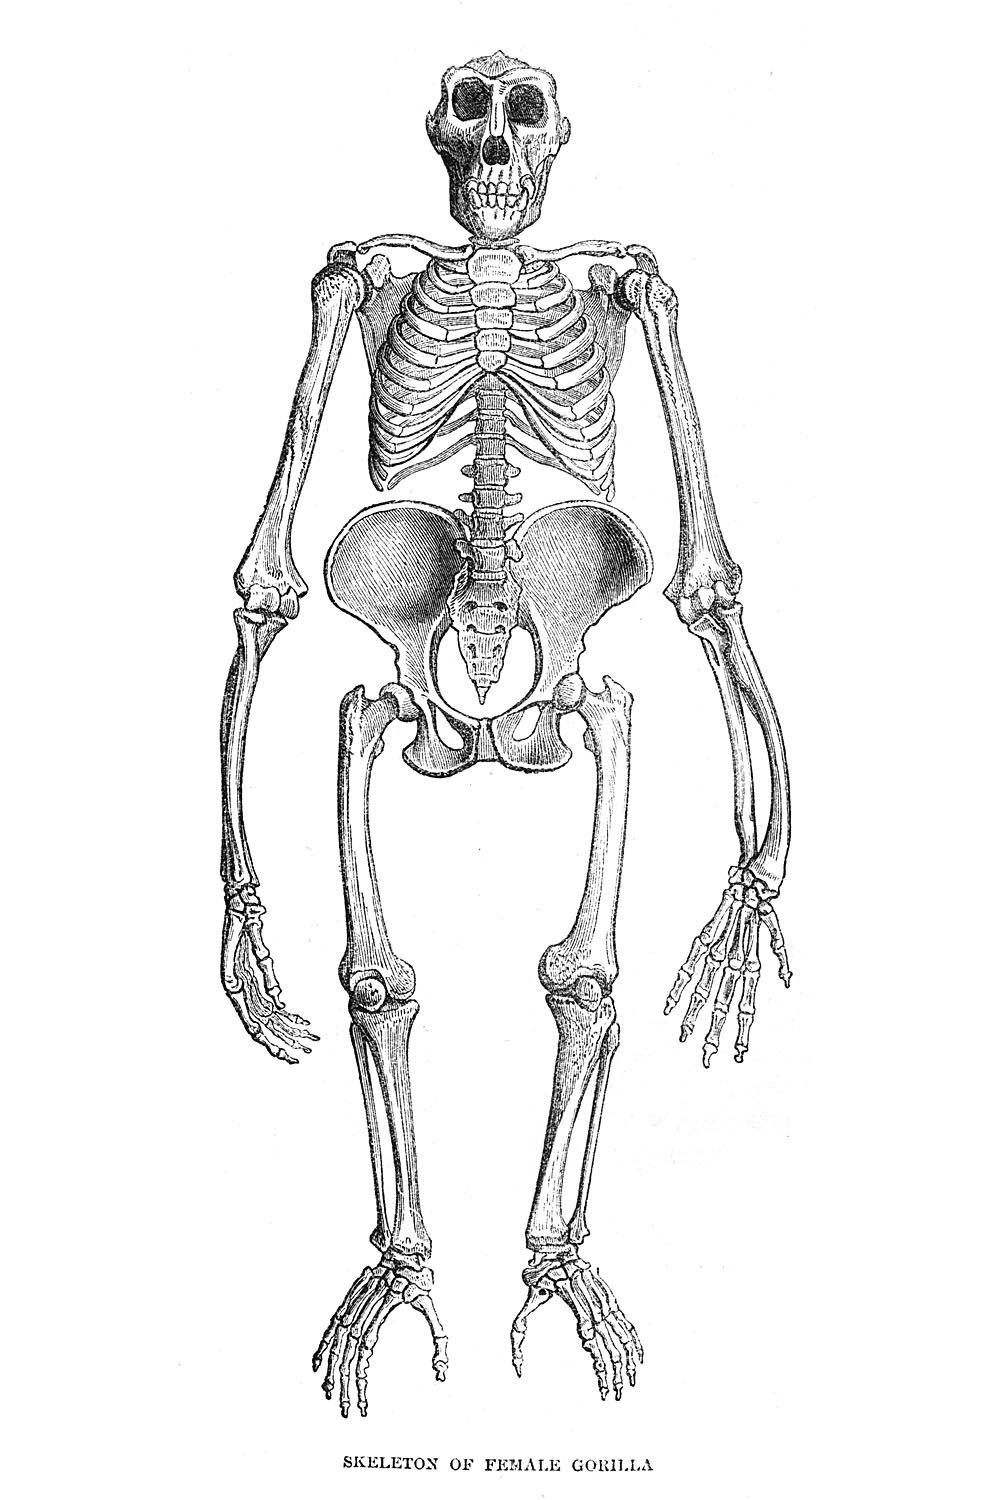 The skeleton of a female gorilla. | Animals | Pinterest | Female ...